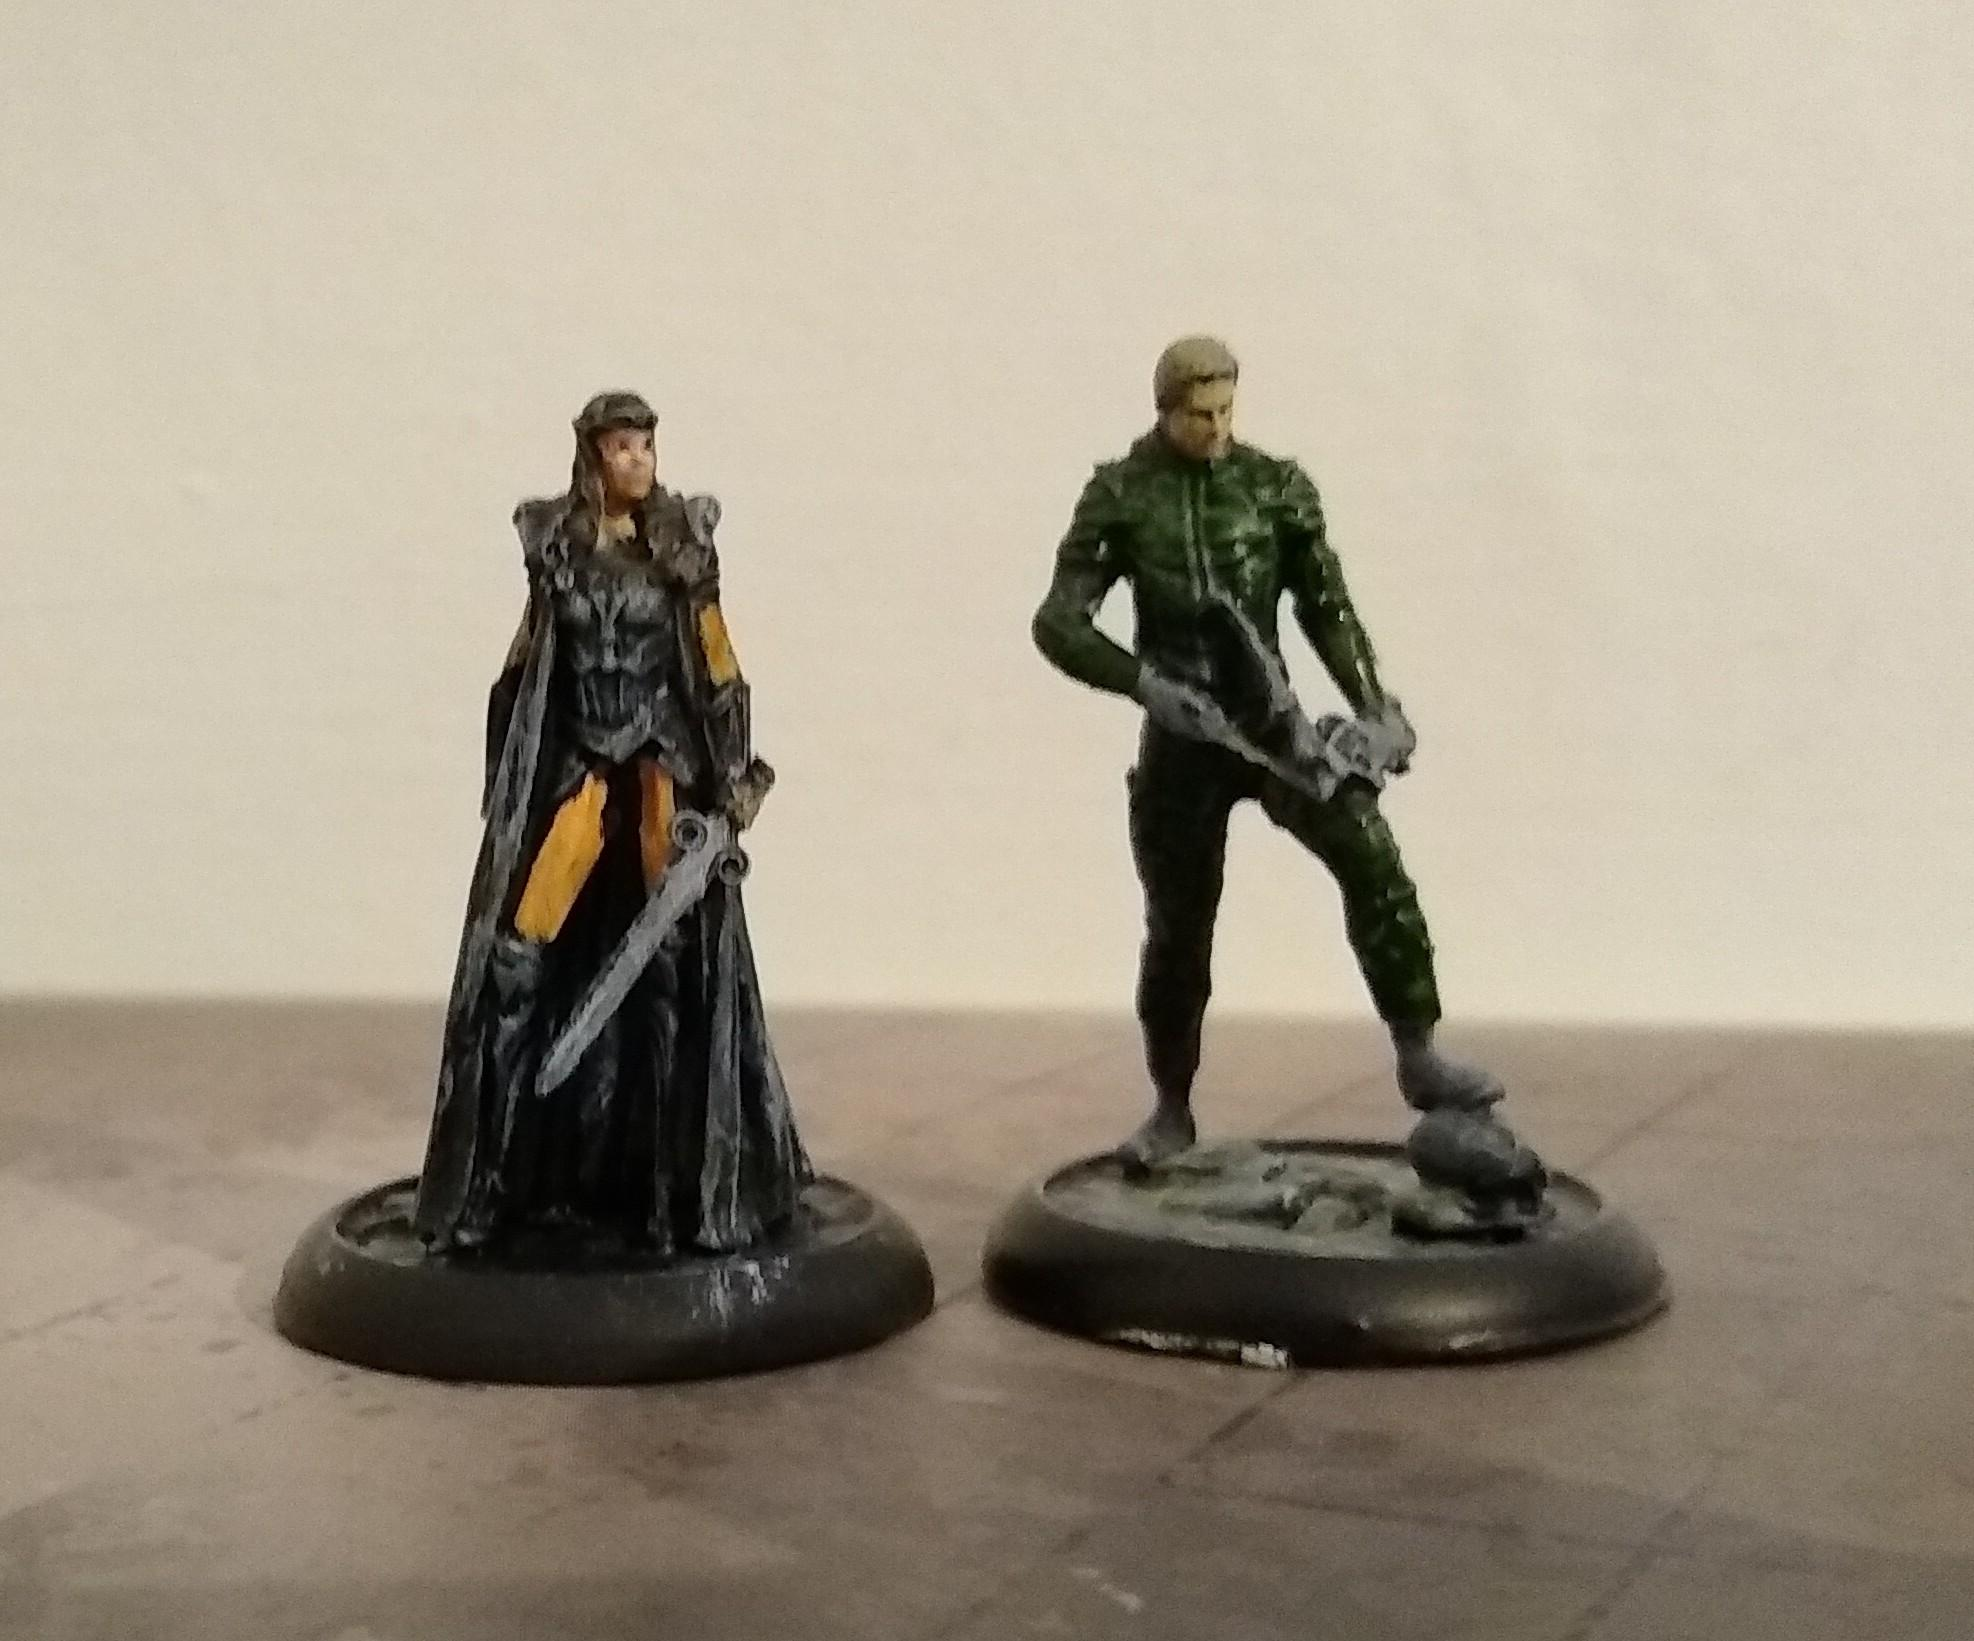 Hippolyta/green arrow wips